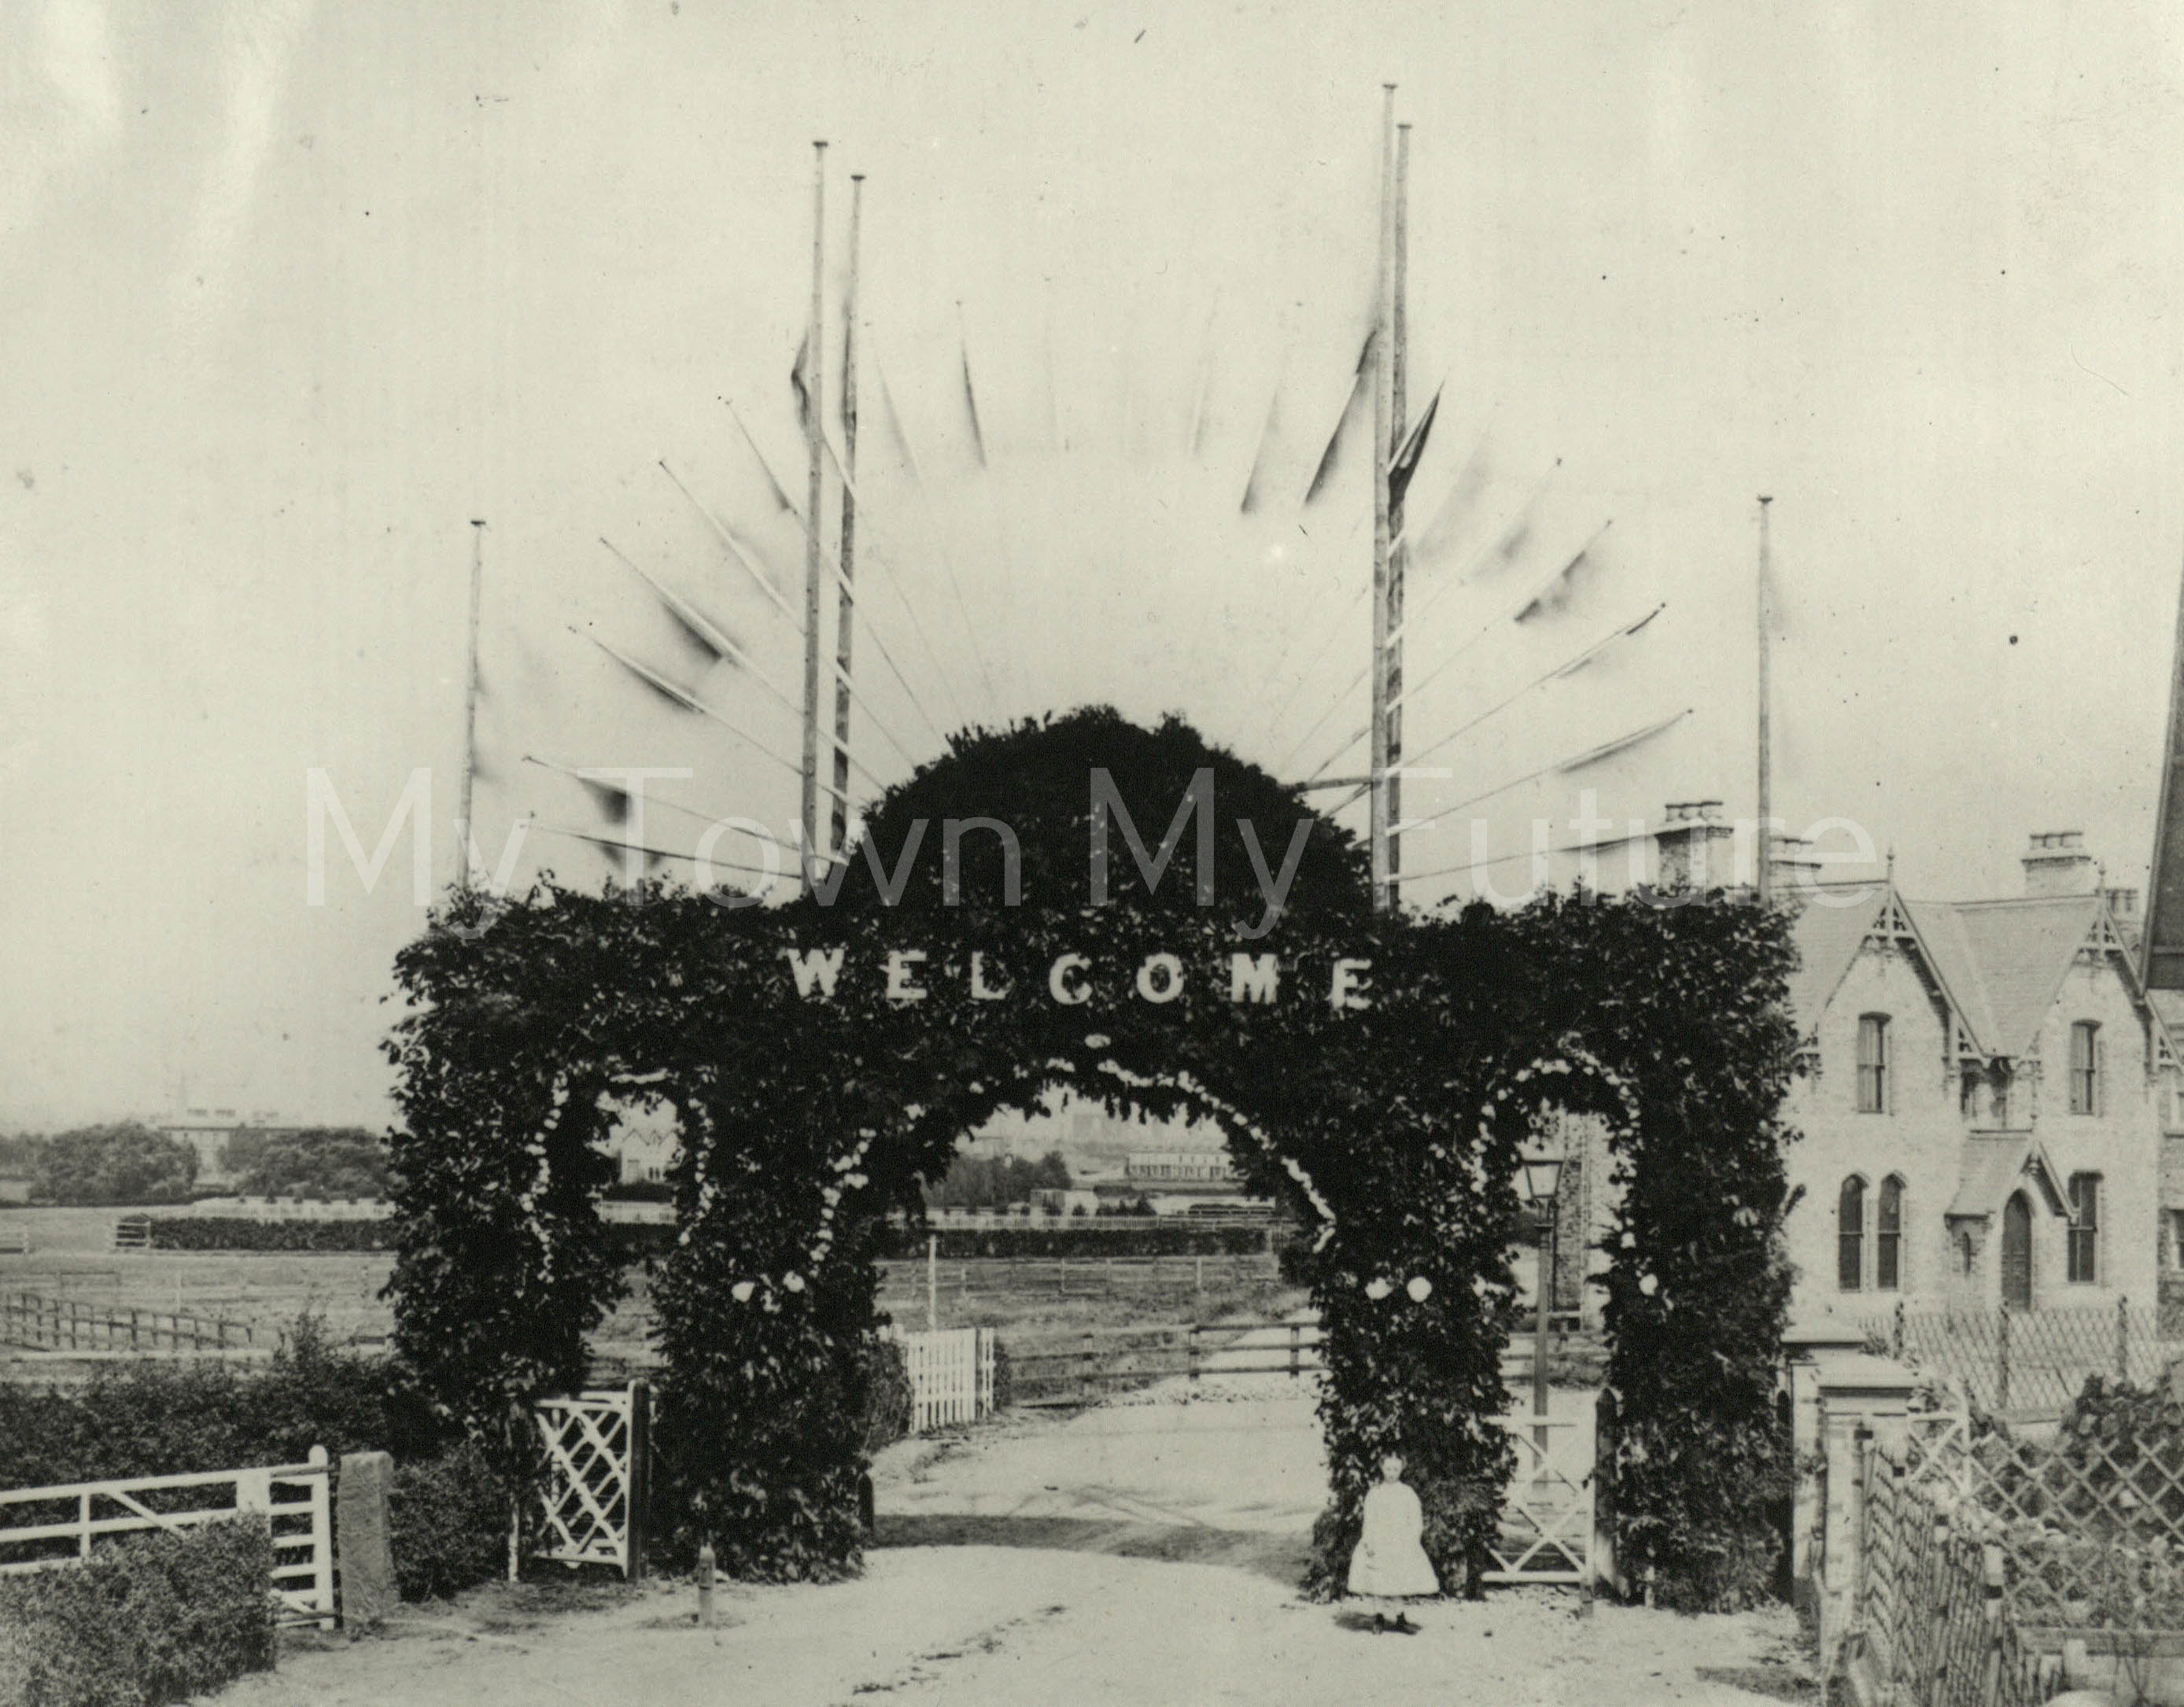 Triumphant arch over Marton Road at Grove Hill end for Albert Park, 11th August 1868, Opening of the new Albert Park, Dennis Wompra Photograher's, 86 Grange Road, Middlesbrough